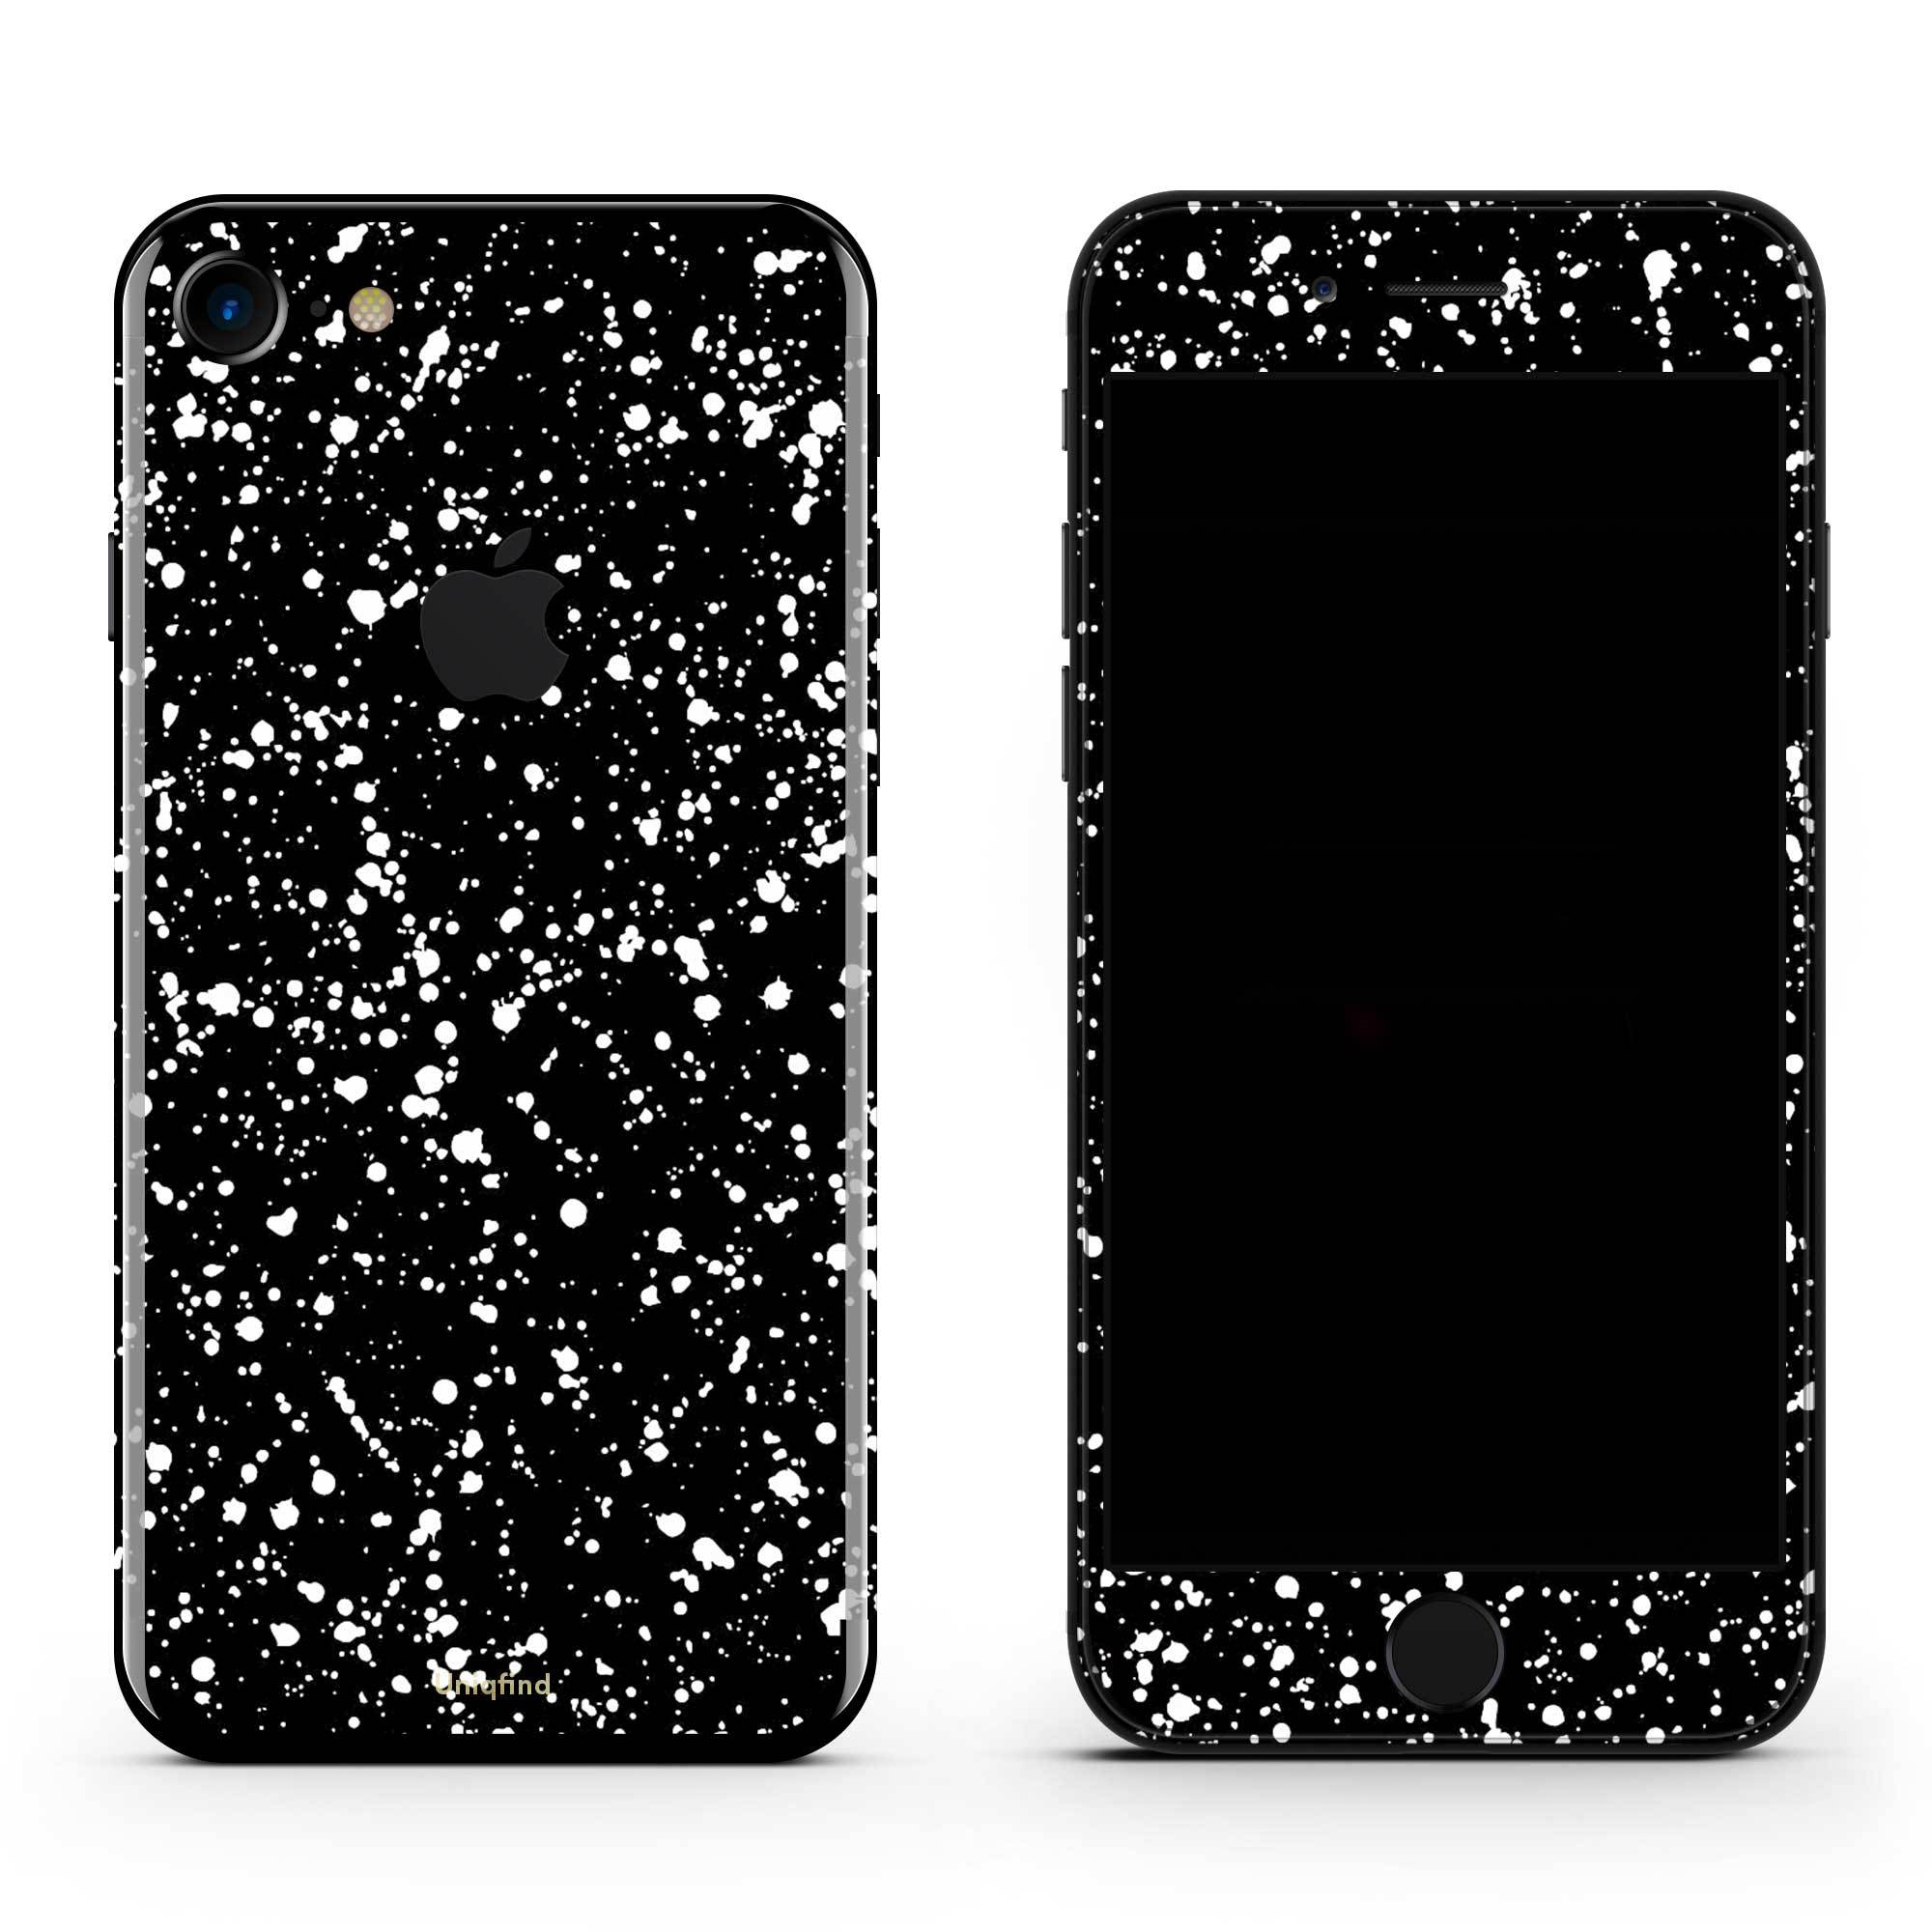 Black Speckle iPhone 8 Plus Skin + Case